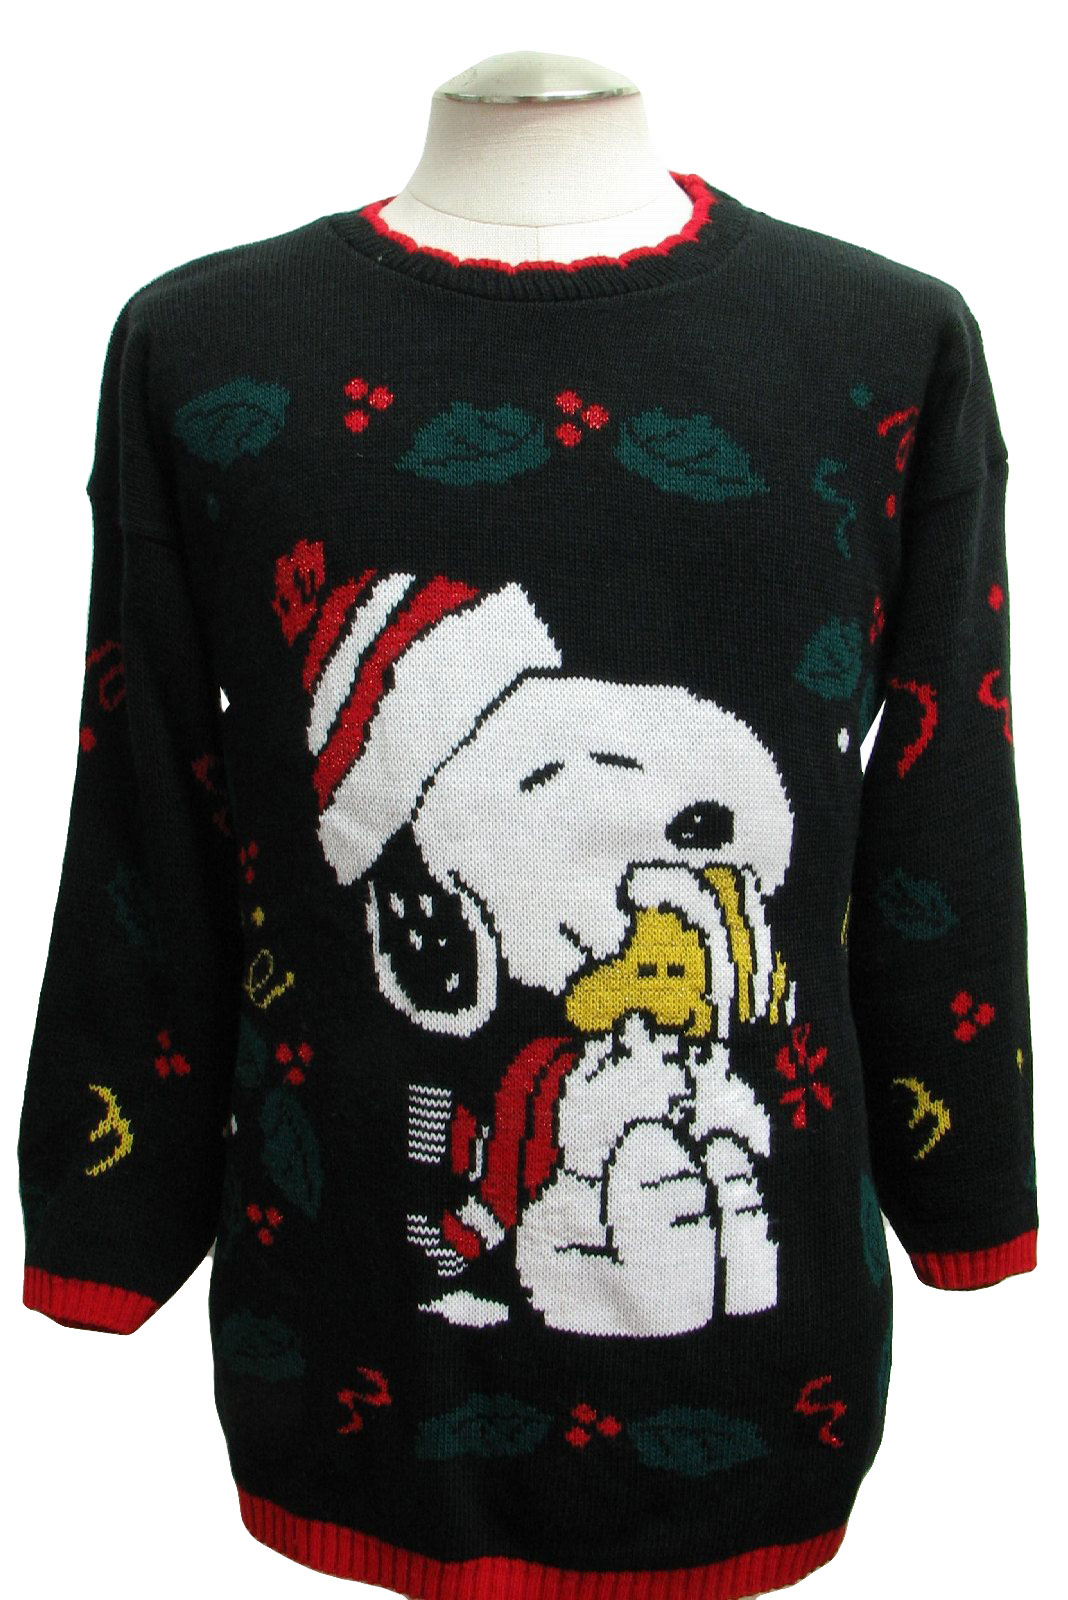 1980 S Retro Ugly Christmas Sweater 80s Authentic Vintage